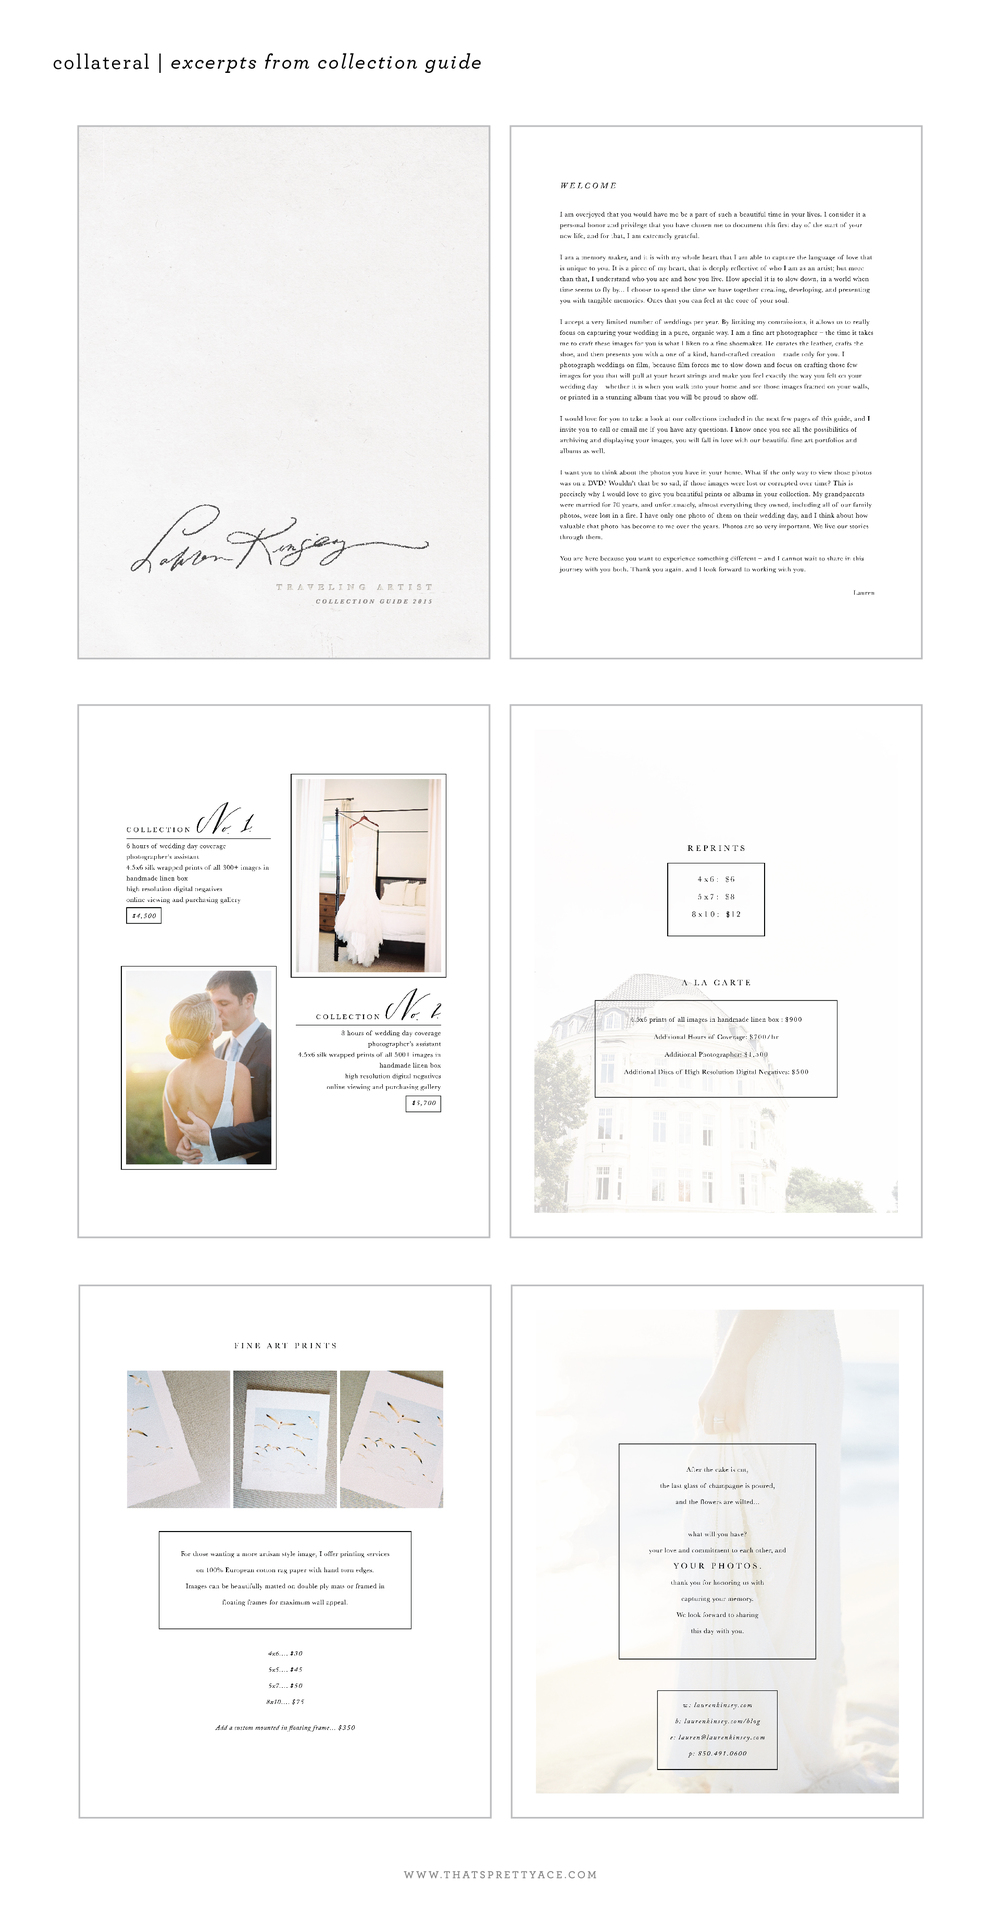 Lauren Kinsey Photography branding - that's pretty ace